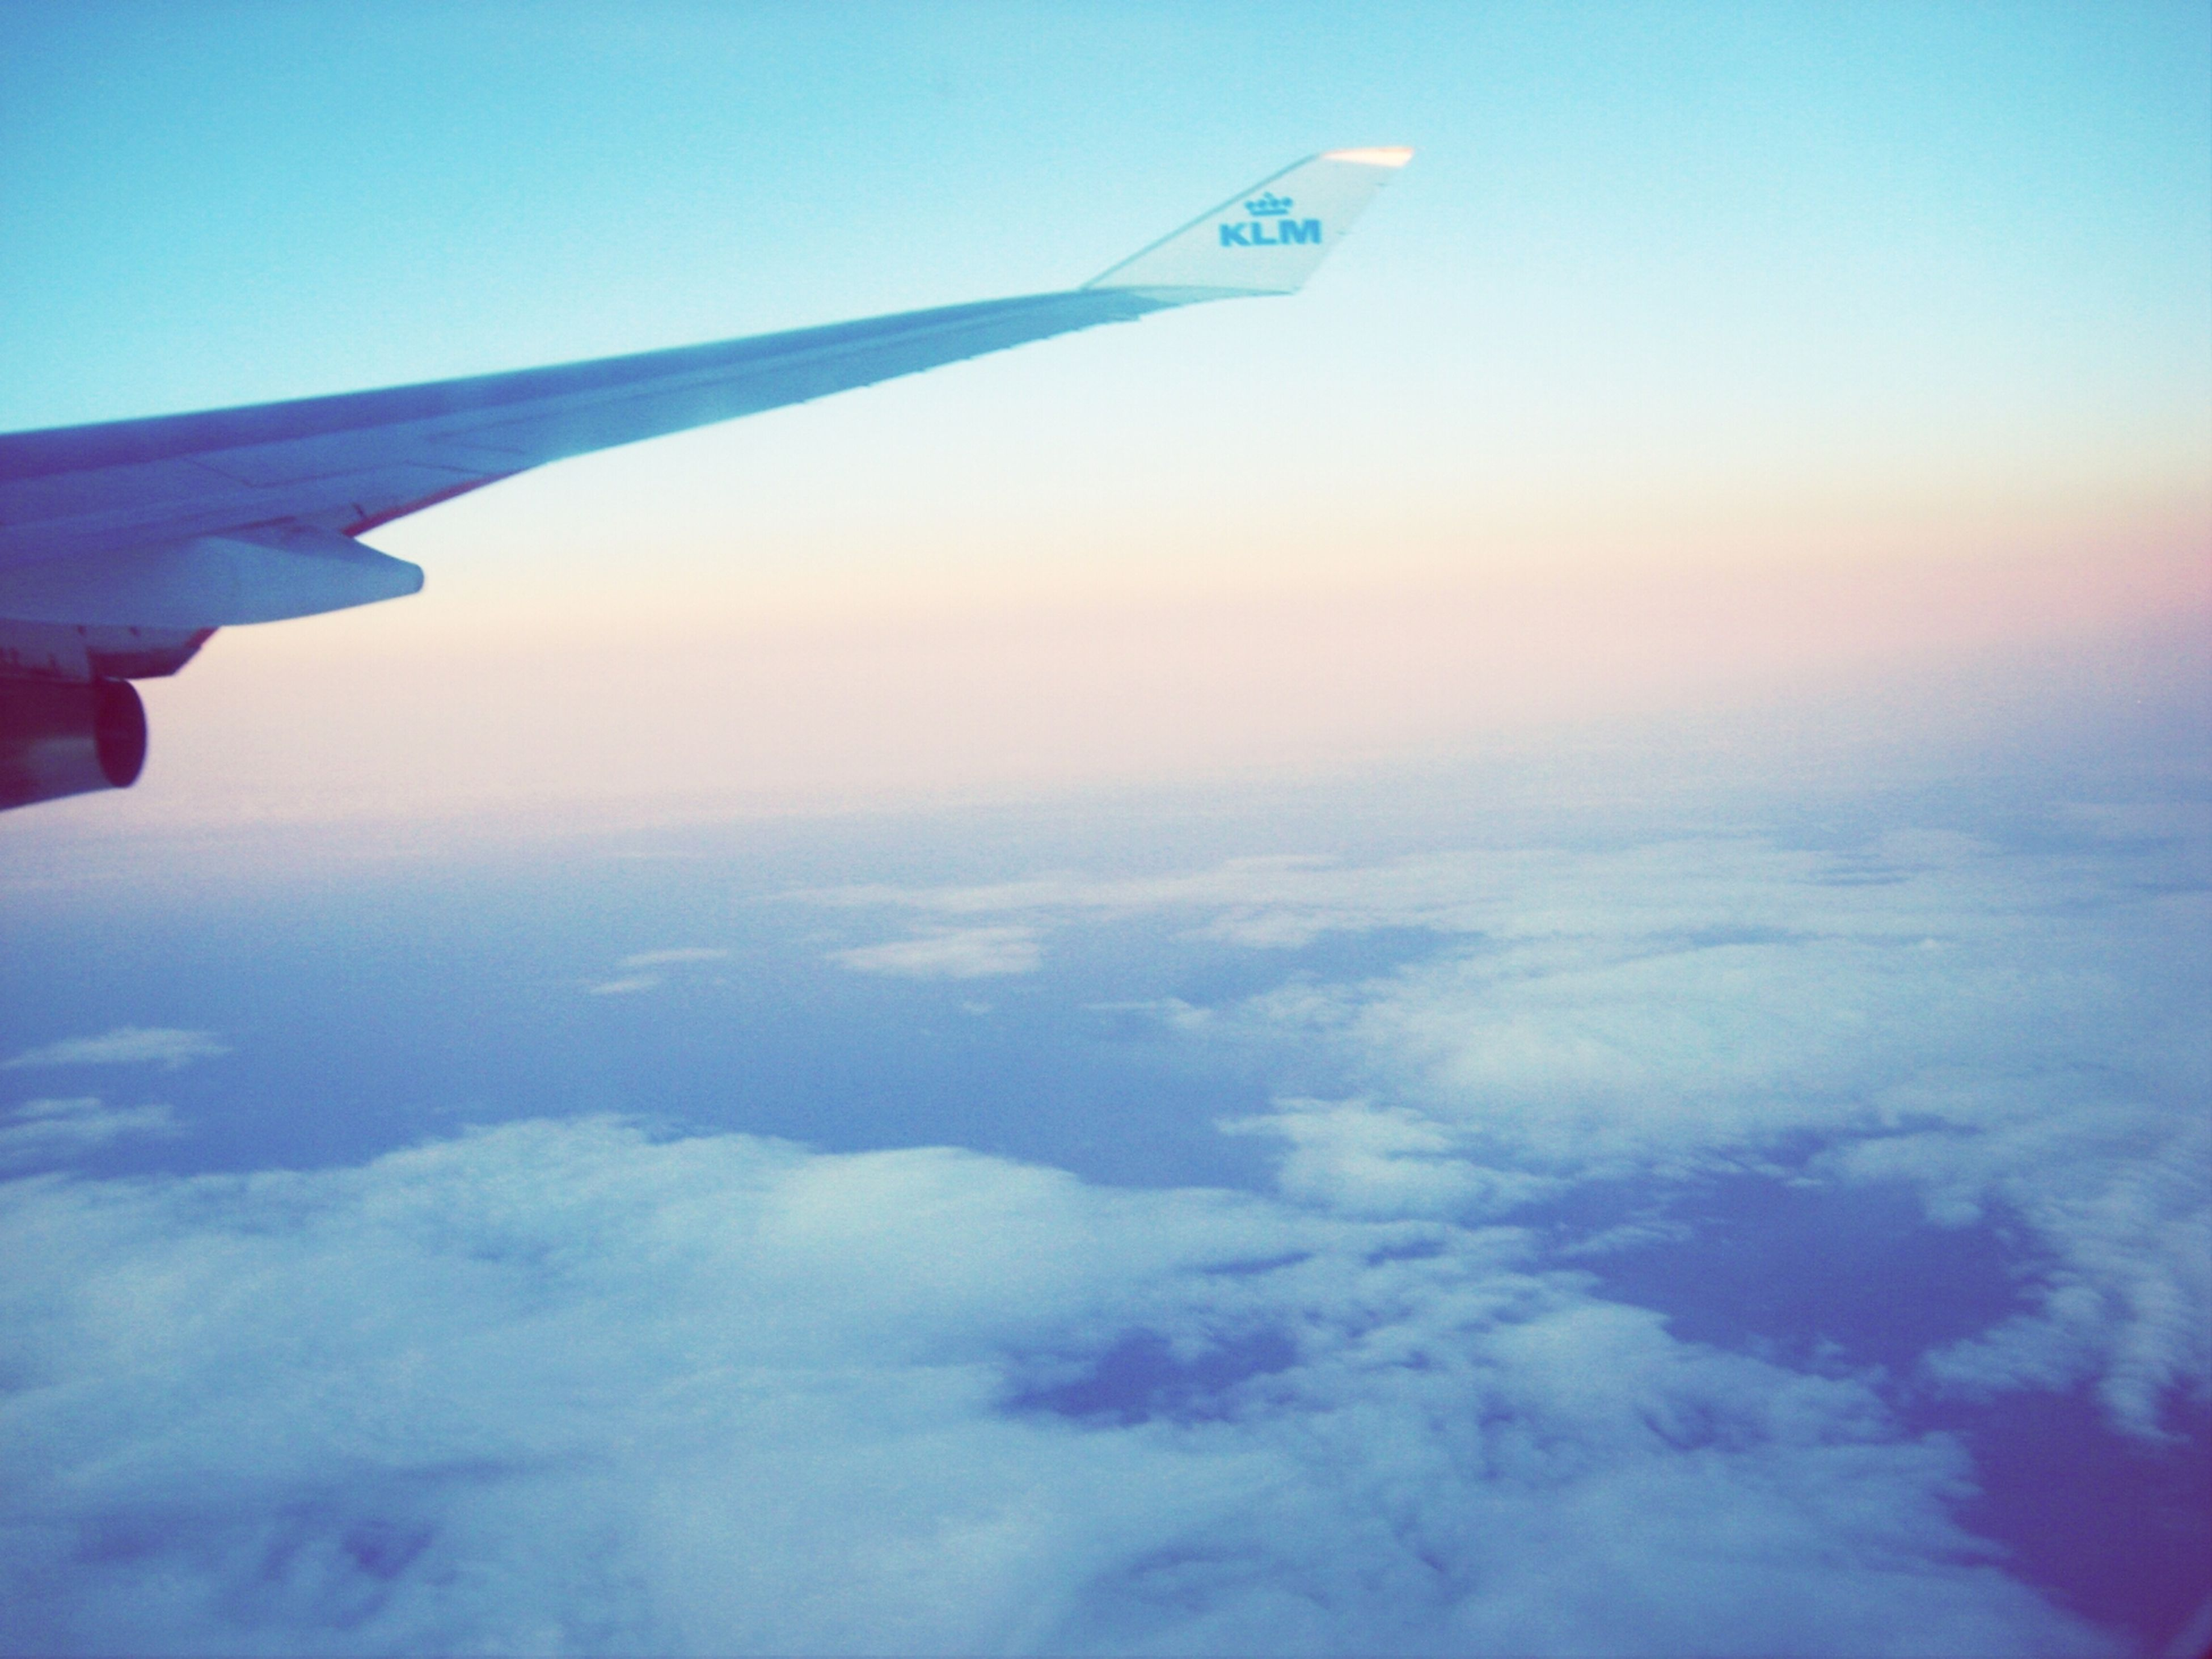 airplane, flying, air vehicle, aircraft wing, transportation, blue, mode of transport, sky, part of, cropped, scenics, mid-air, beauty in nature, travel, aerial view, nature, cloud - sky, tranquility, tranquil scene, journey